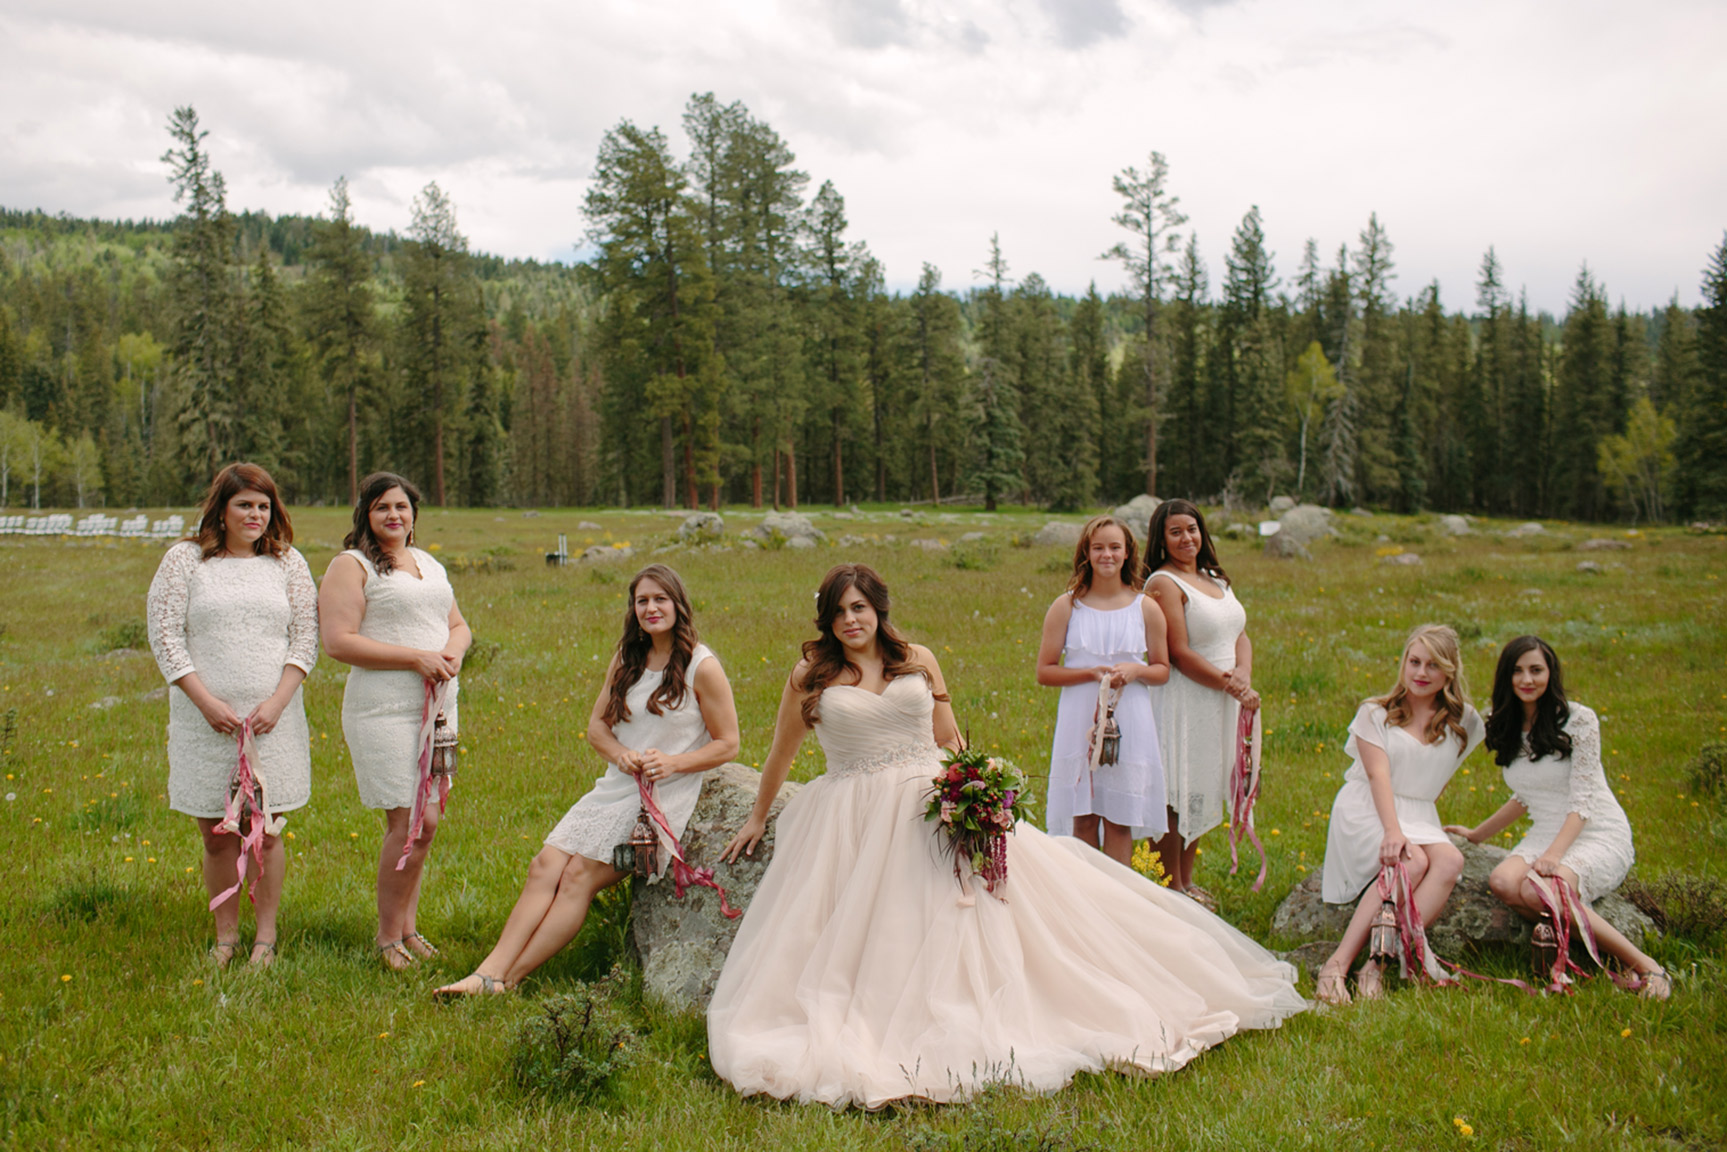 PhotobyBetsy-colorado-wedding34c.JPG